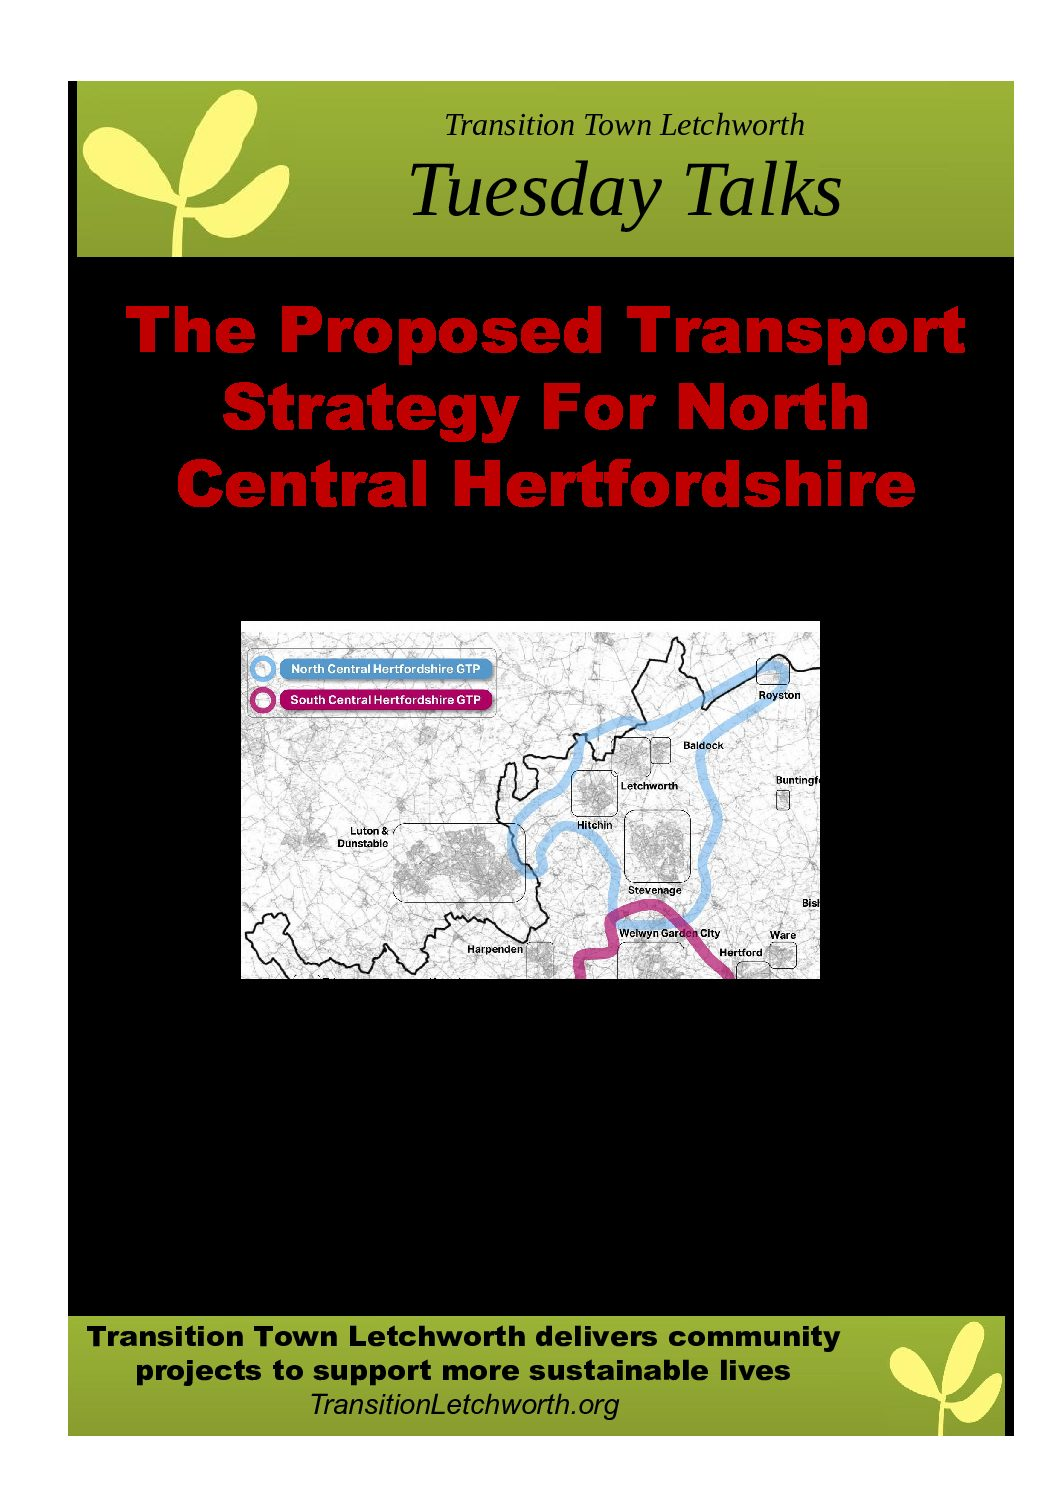 The Proposed Transport Strategy for North Central Hertfordshire